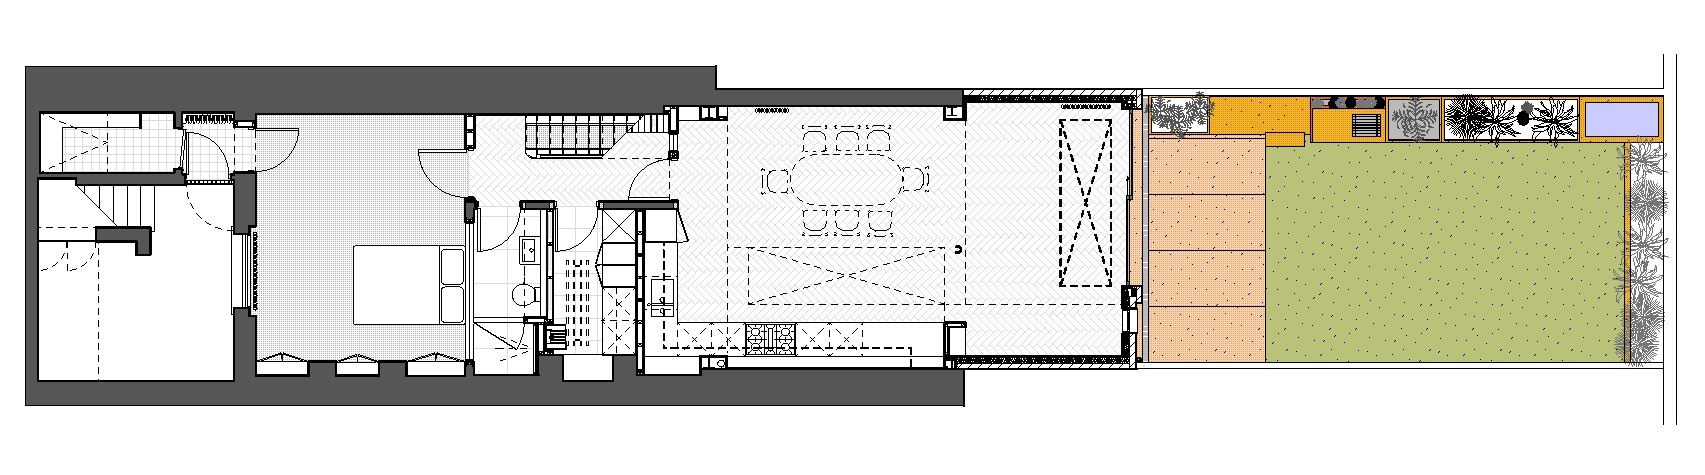 Richford St Plan .jpg